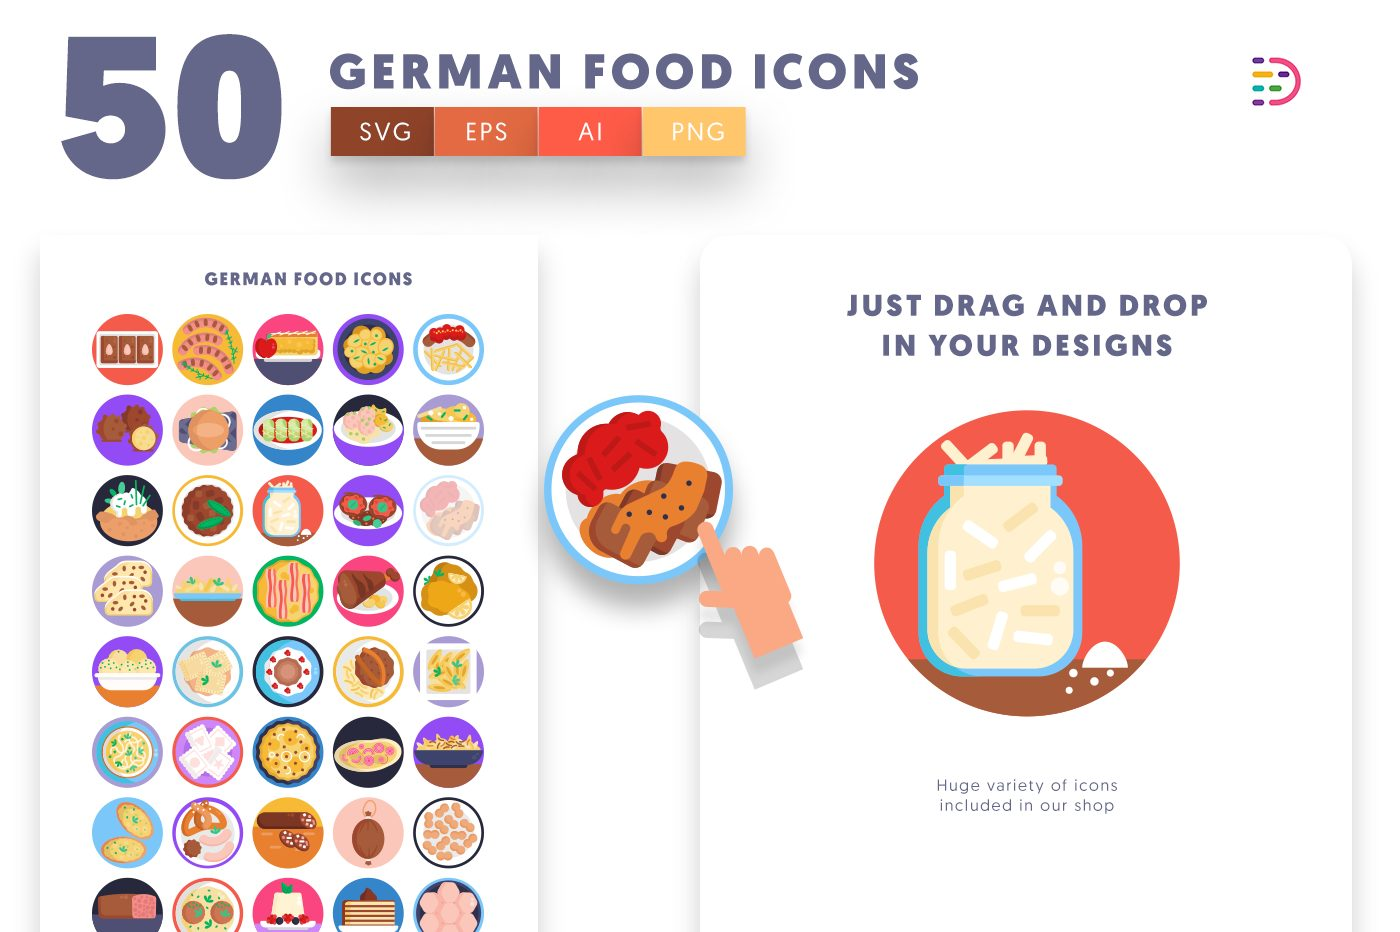 Drag and drop vector 50 German Food Icons